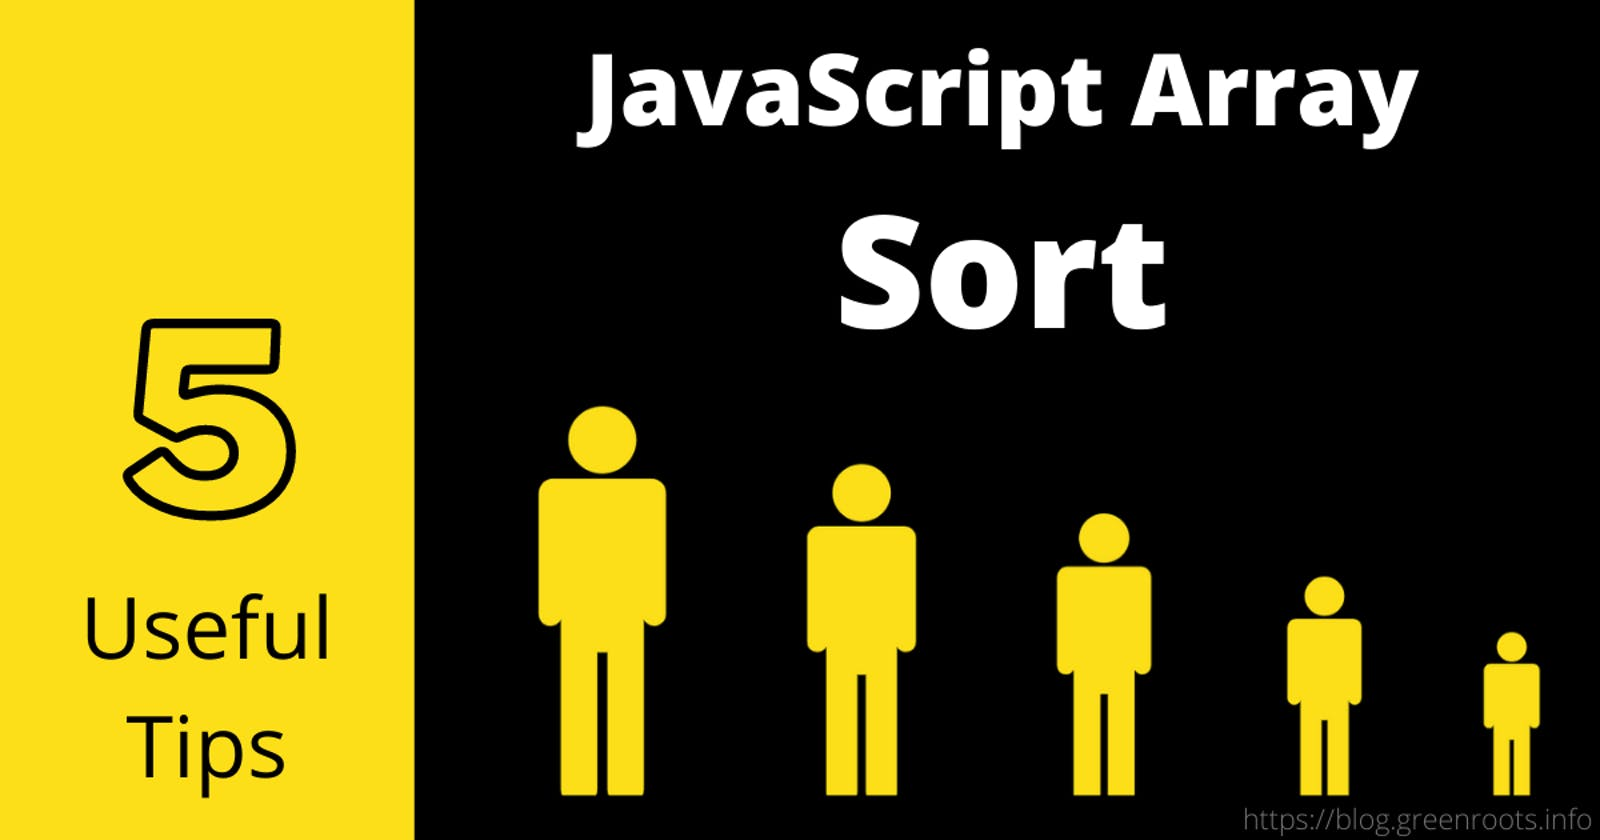 5 useful tips about the JavaScript array sort method